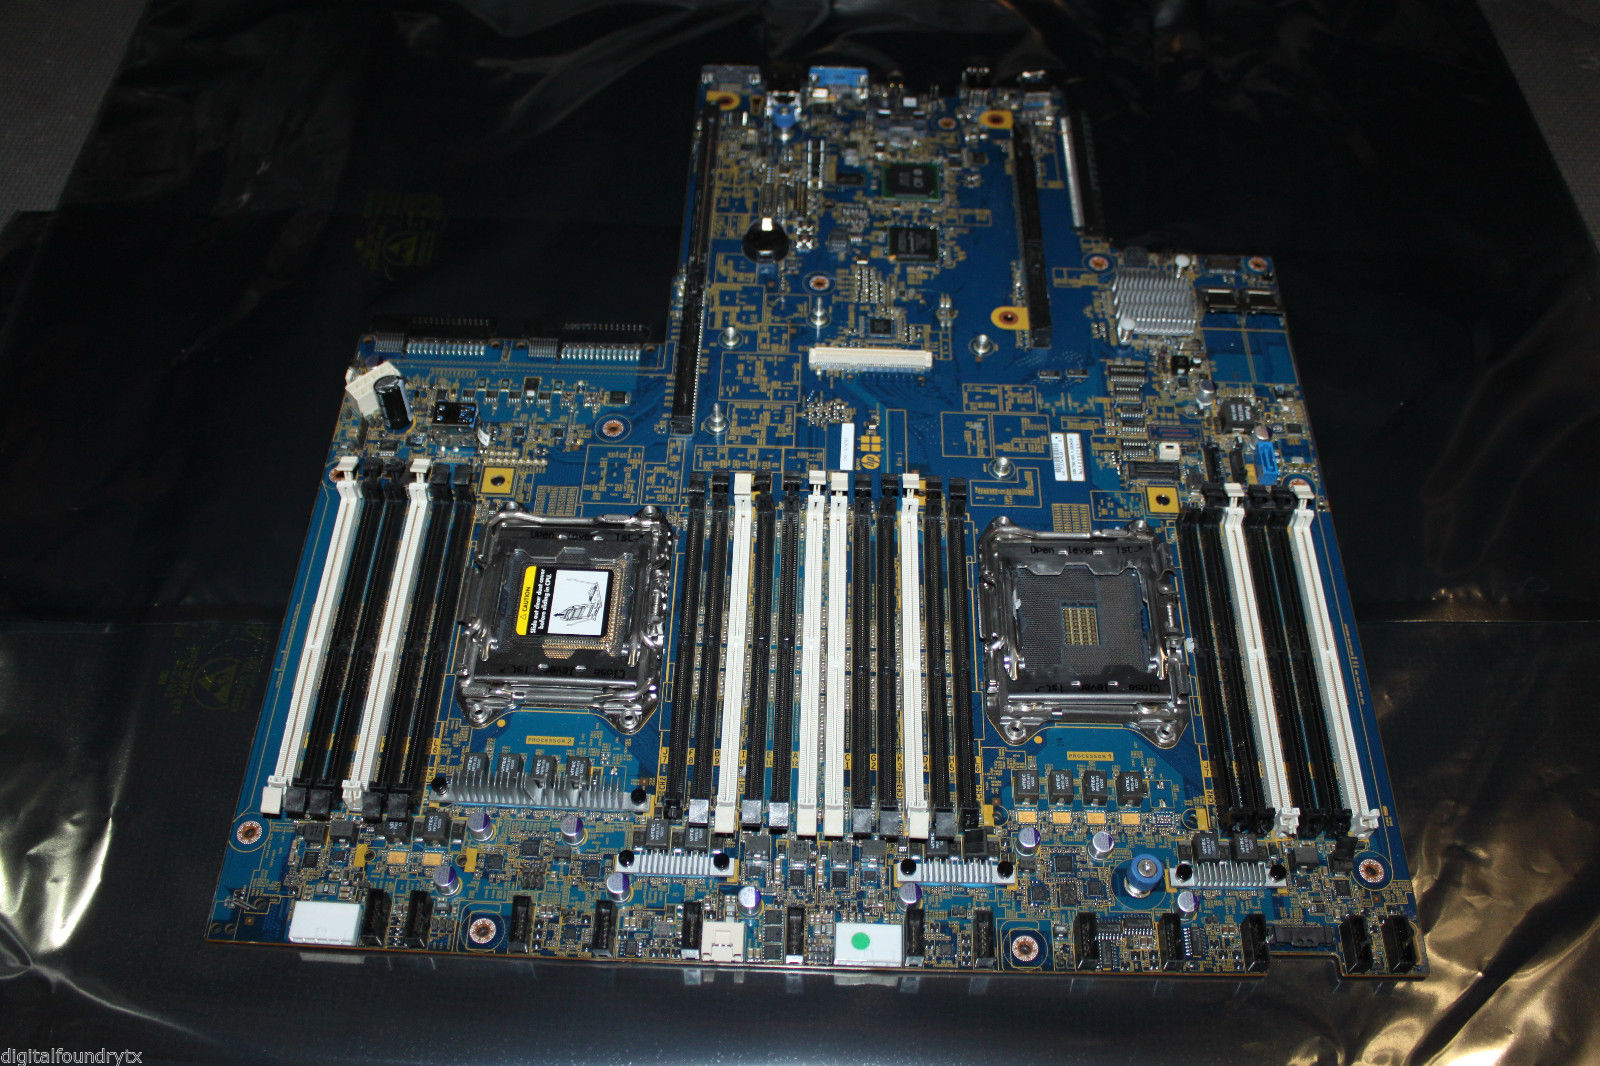 Ebay] Haswell-E Motherboard and CPU appear - Overclock net - An